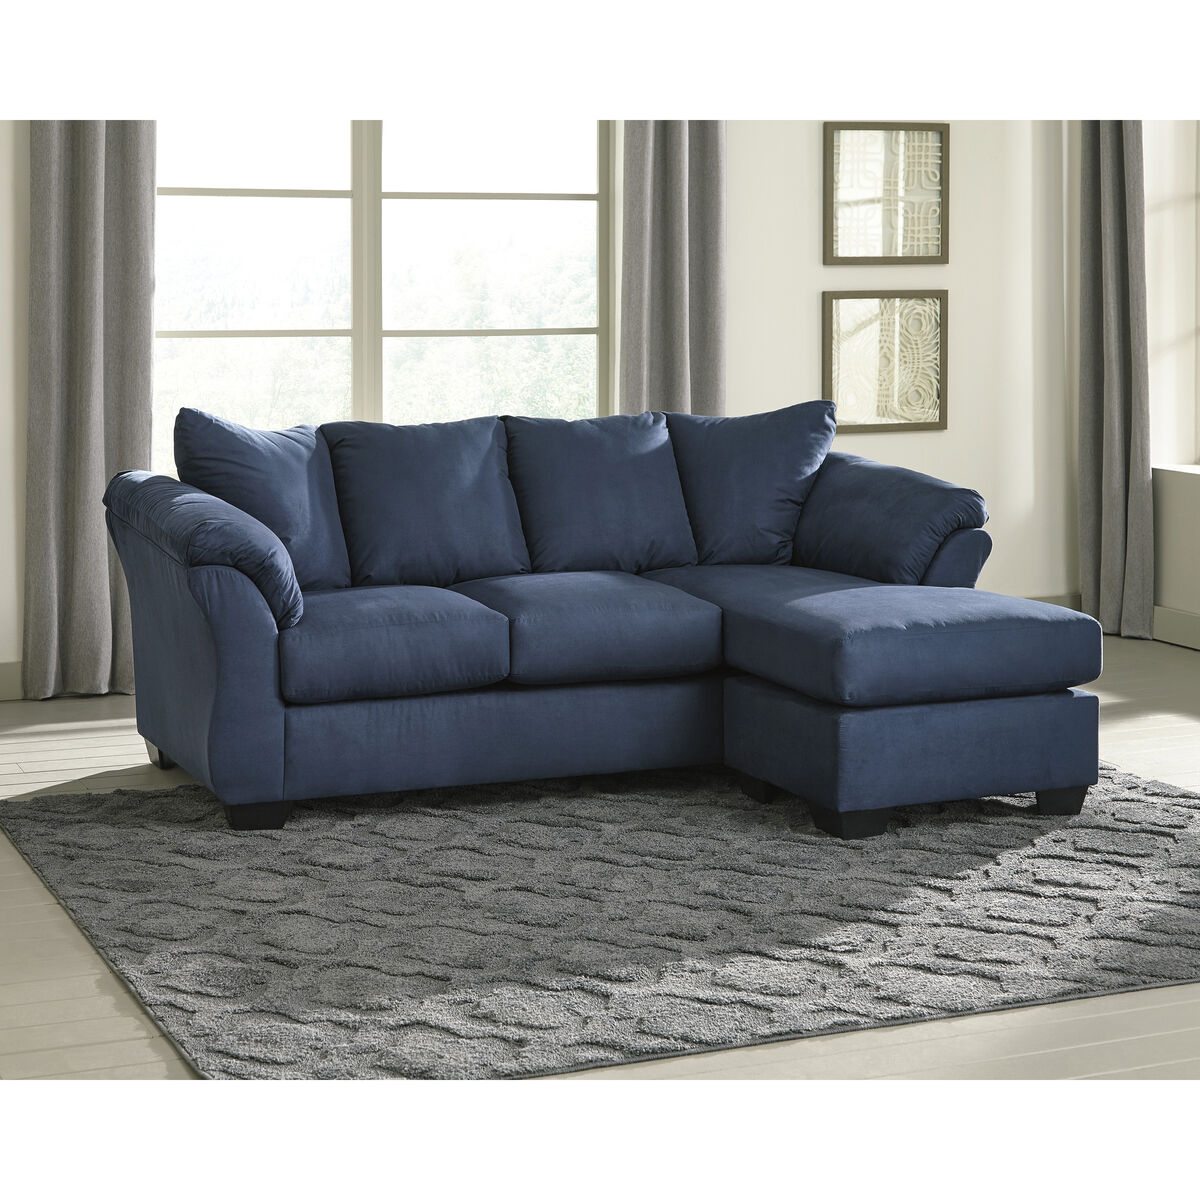 Our Signature Design By Ashley Darcy Sofa Chaise In Blue Microfiber Is On Now